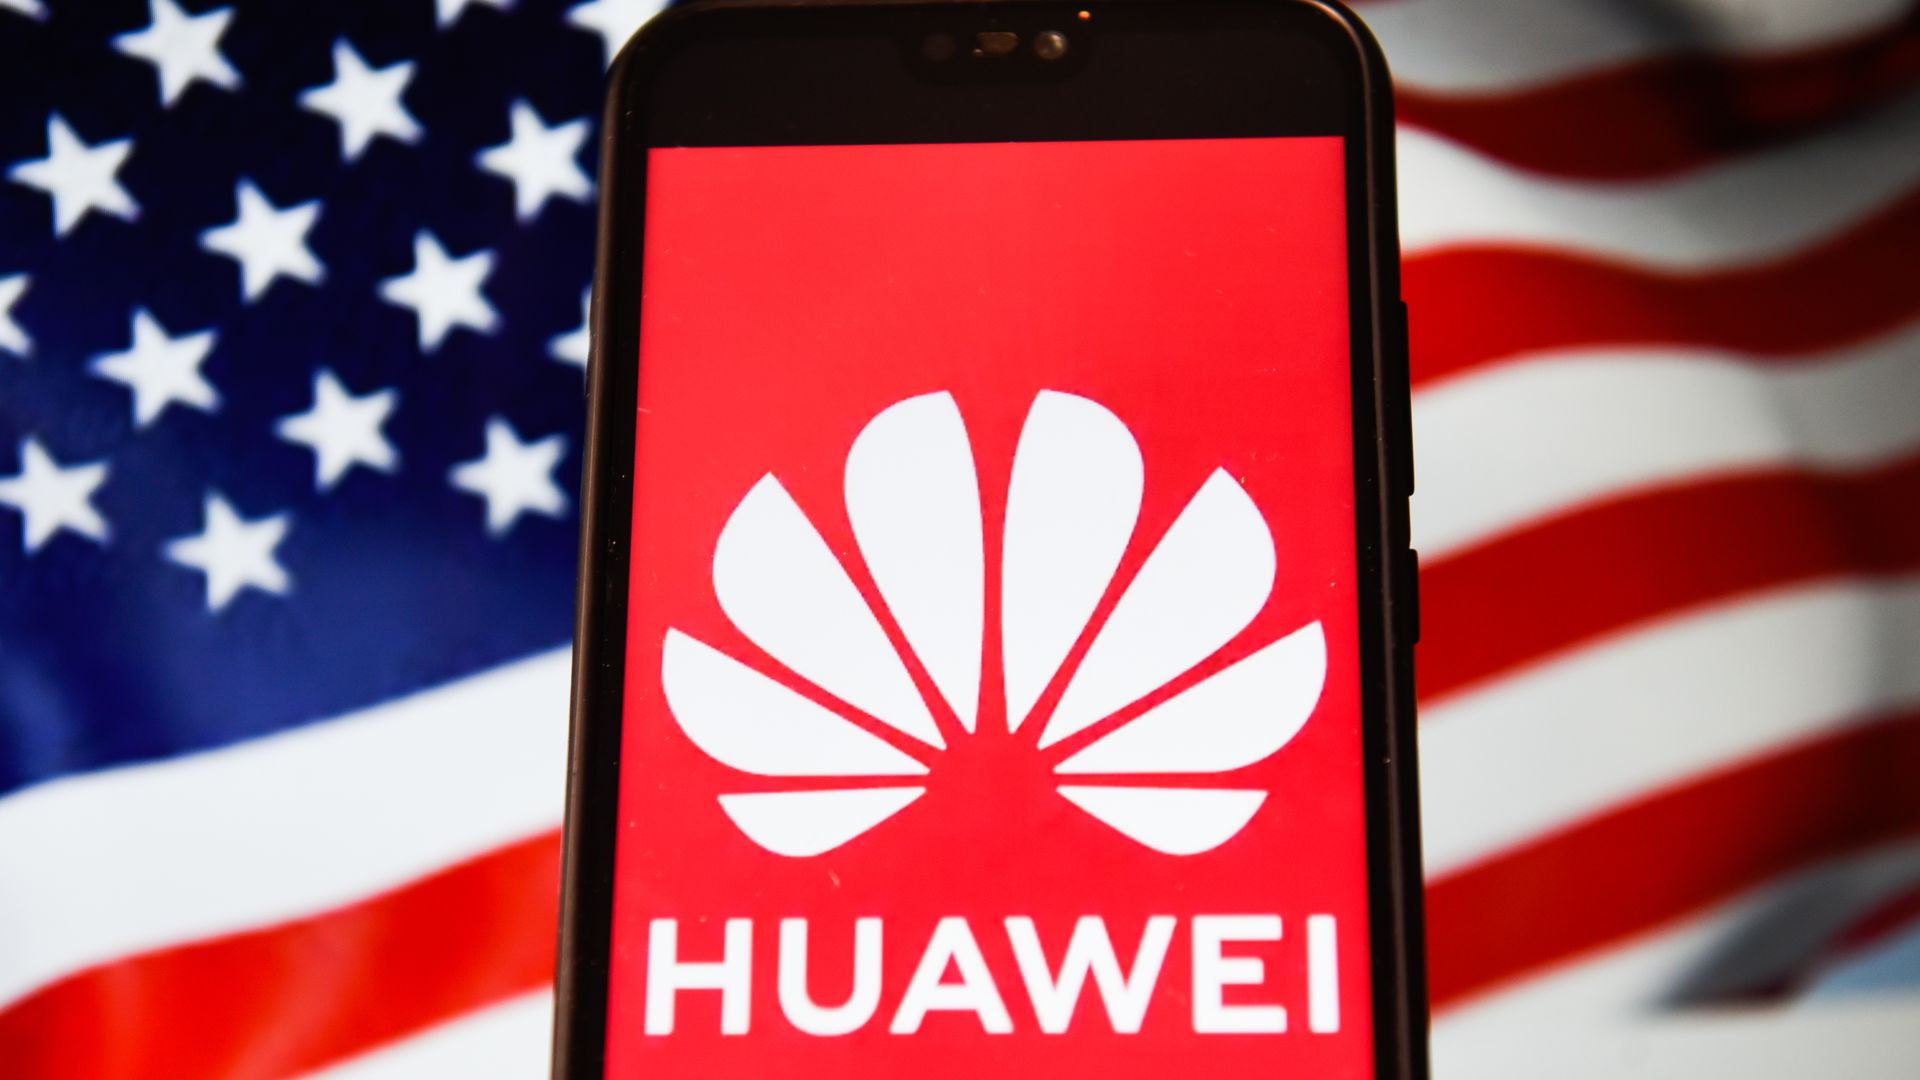 This photo shows the Huawei logo displayed on a phone with the American flag in the background.